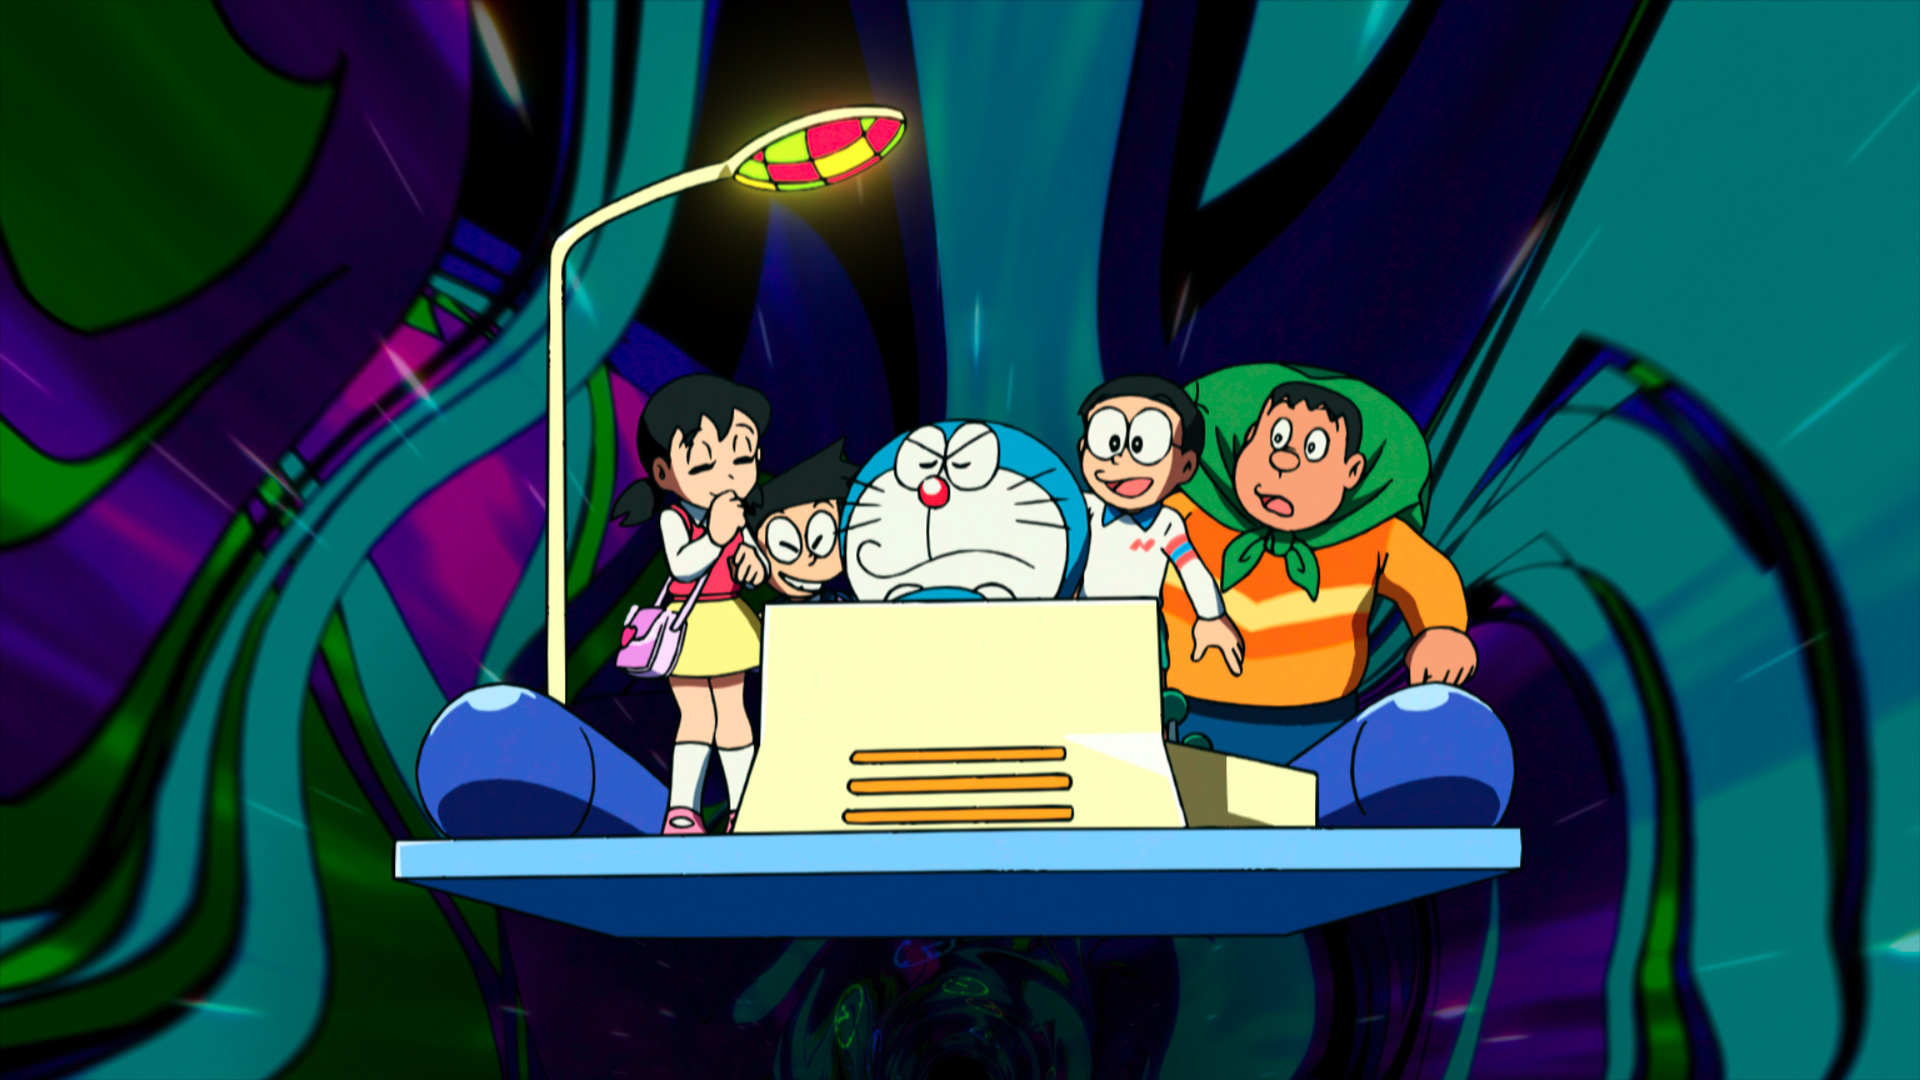 """Time travelling in """"Doraemon: Nobita and the Birth of Japan 2016."""" (Golden Village Pictures)"""